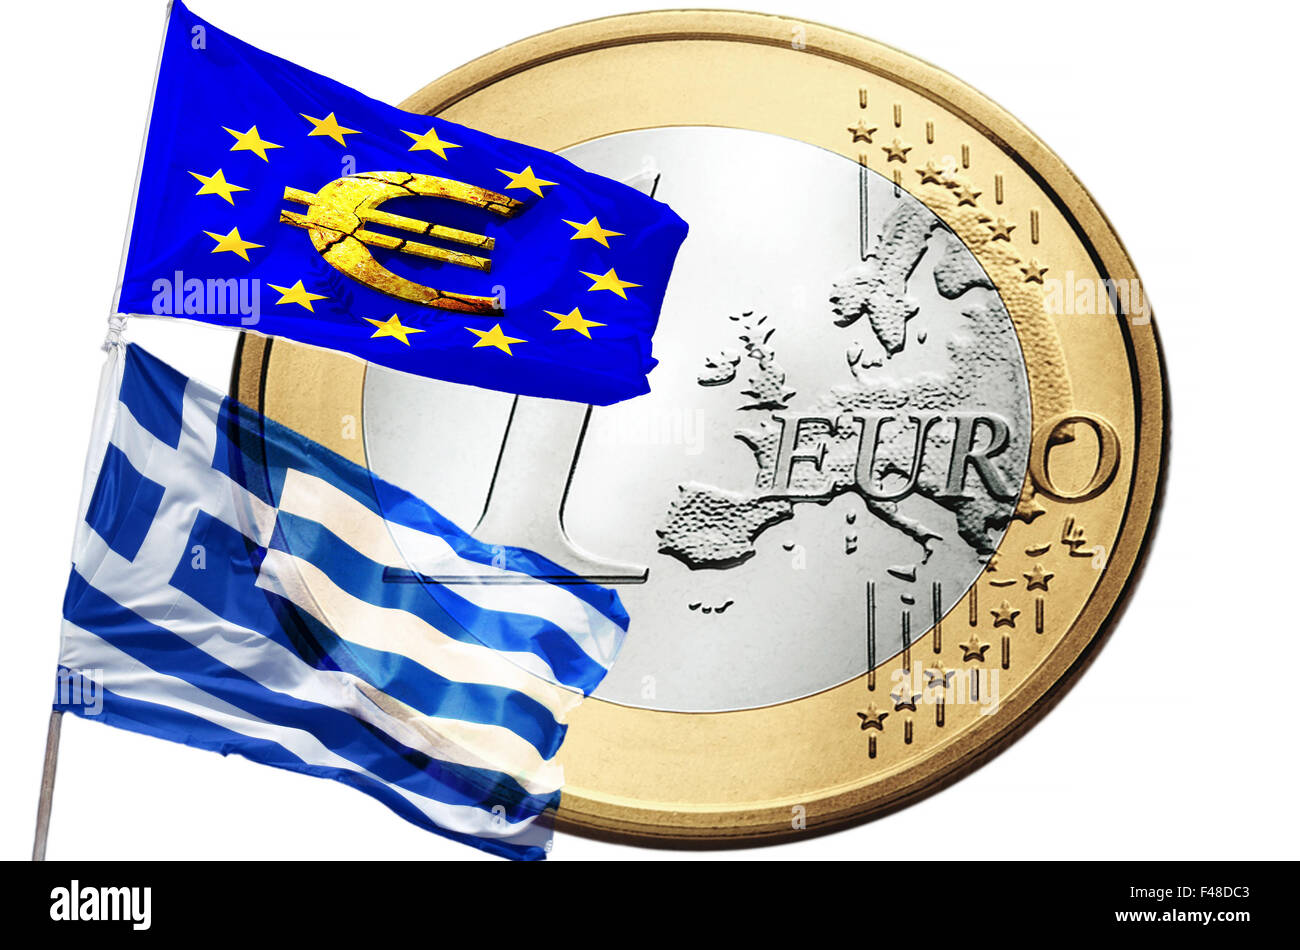 Greece and the European Union - Stock Image